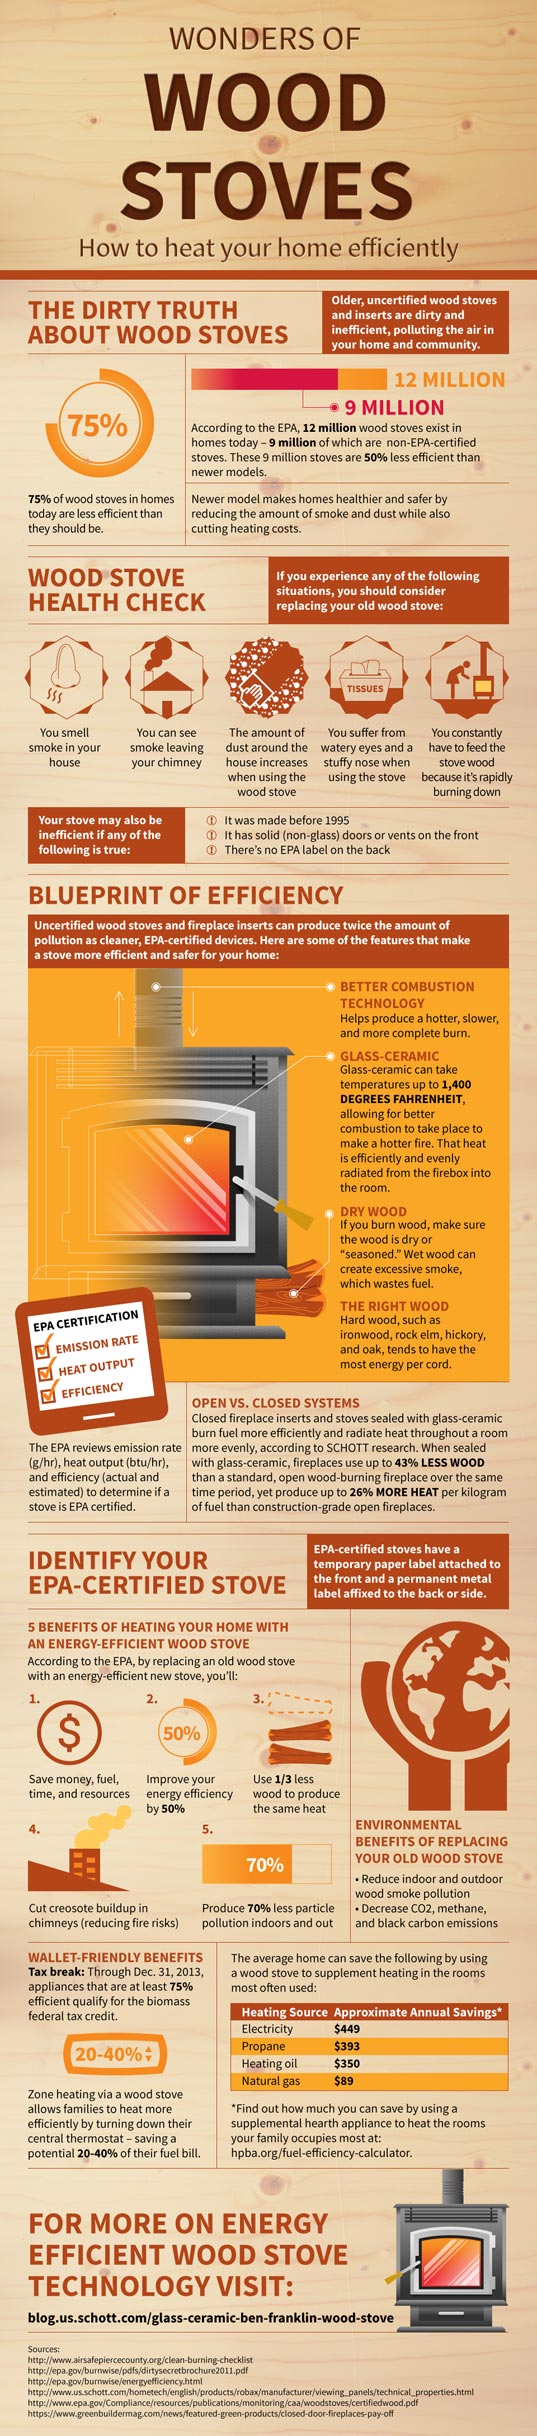 wood stove, efficient wood stove, infographic, energy efficiency, green design, sustainable design, energy-efficient wood stove, green building, heating, climate control